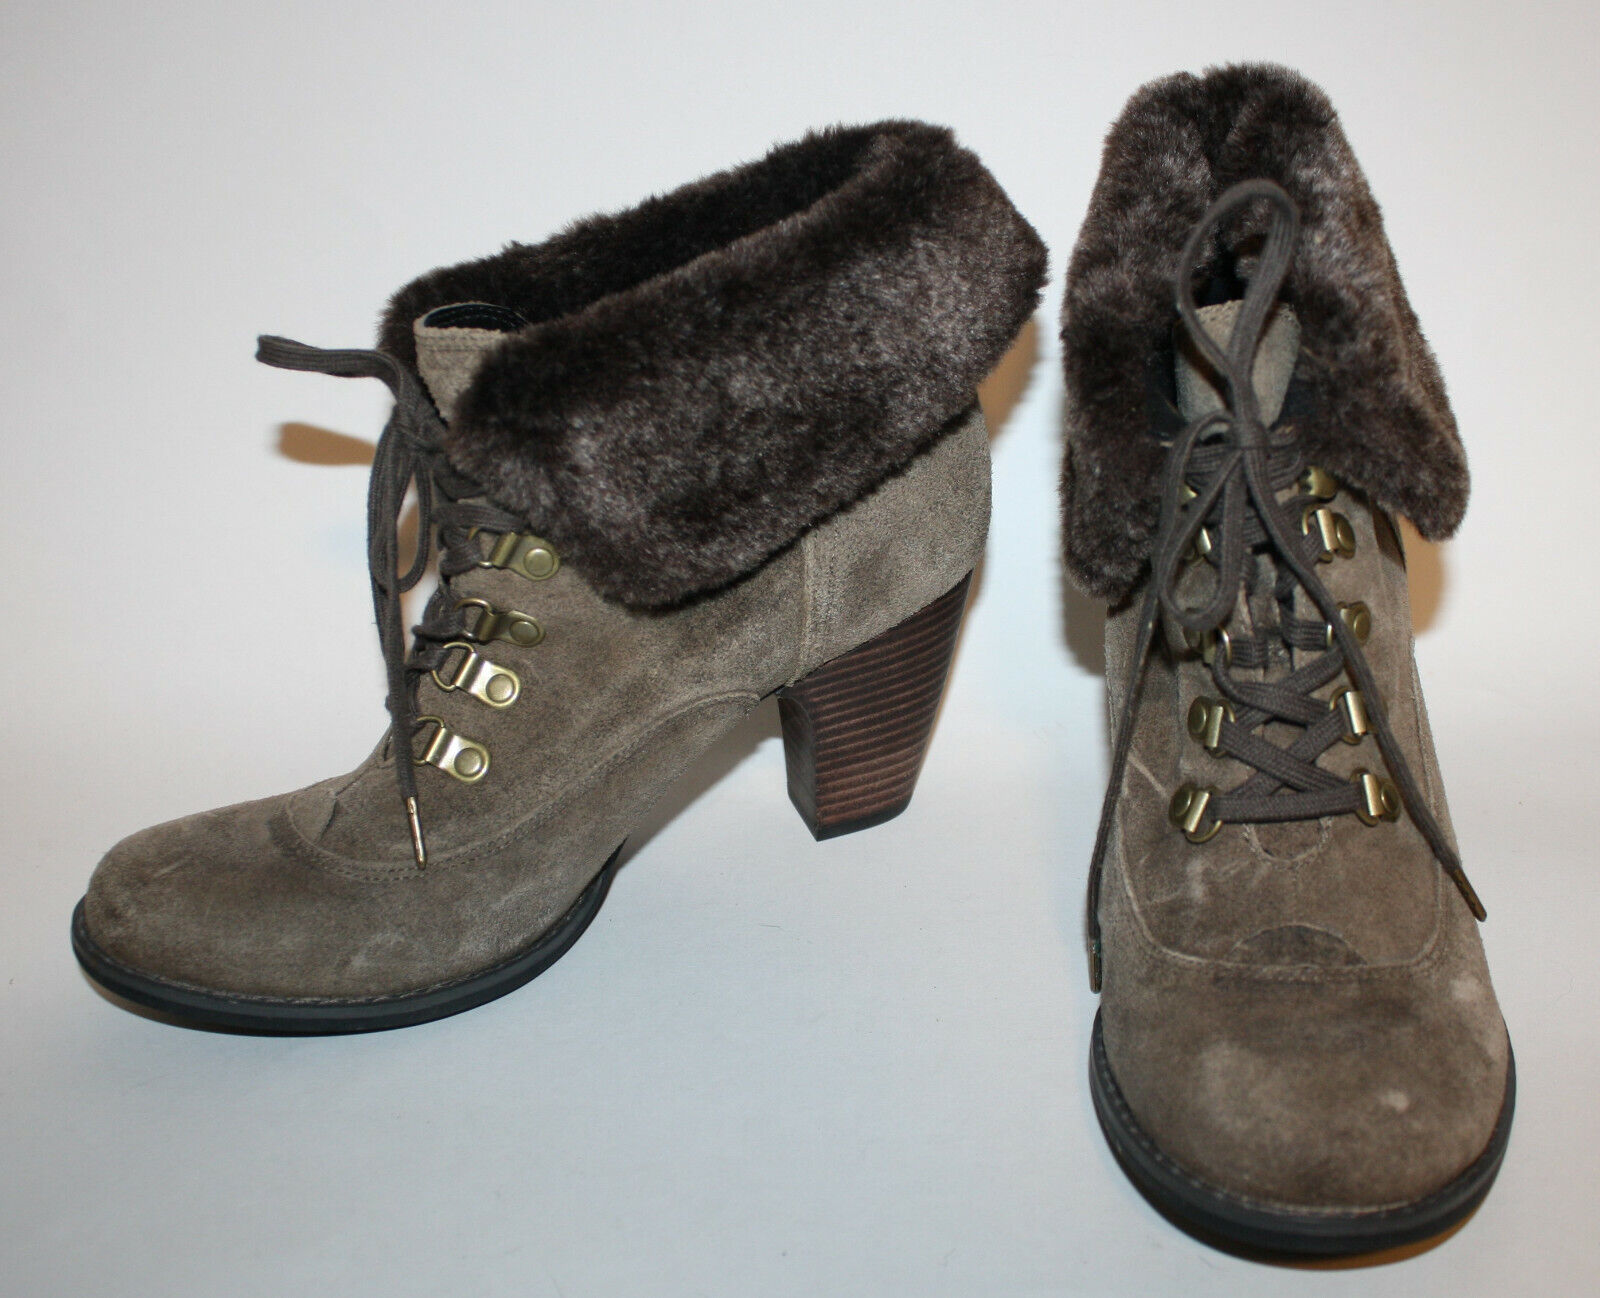 CLARKS Indigo Brown Ankle Boots 9.5 NEW Suede Leather Upper Faux Fur